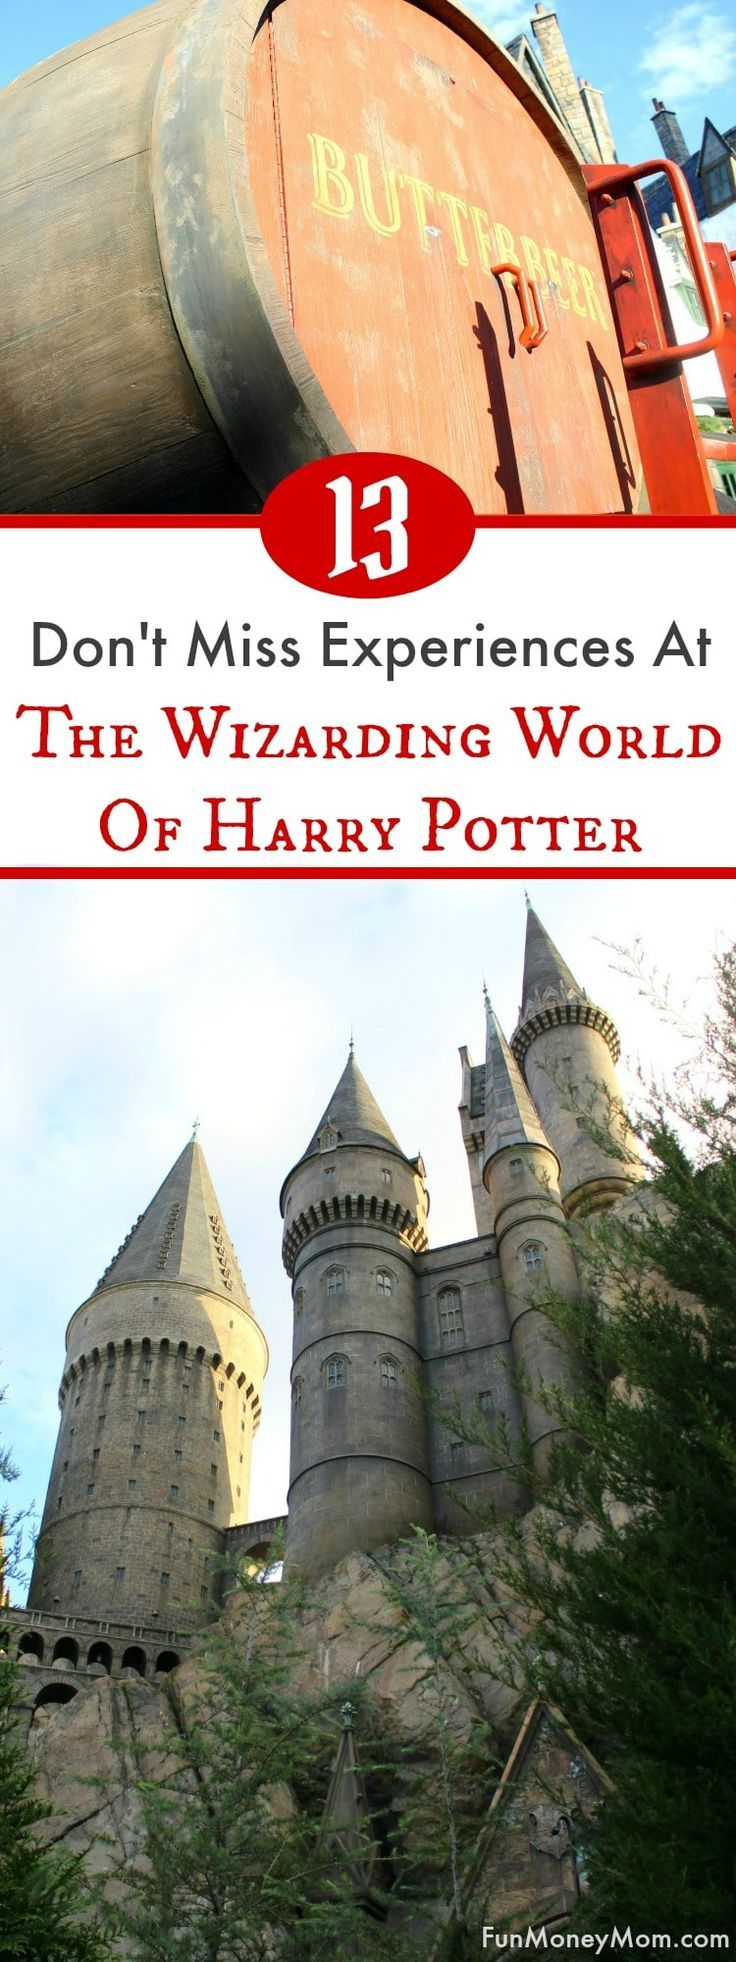 Heading to The Wizarding World Of Harry Potter at Universal Orlando Resort? Harry Potter fans won't want to miss these awesome experiences at Hogsmeade and Diagon Alley. Make your way from Islands Of Adventure to Universal Studios Orlando and feel like you've been transported into the Harry Potter books and movies! #UniversalPartner via @funmoneymom